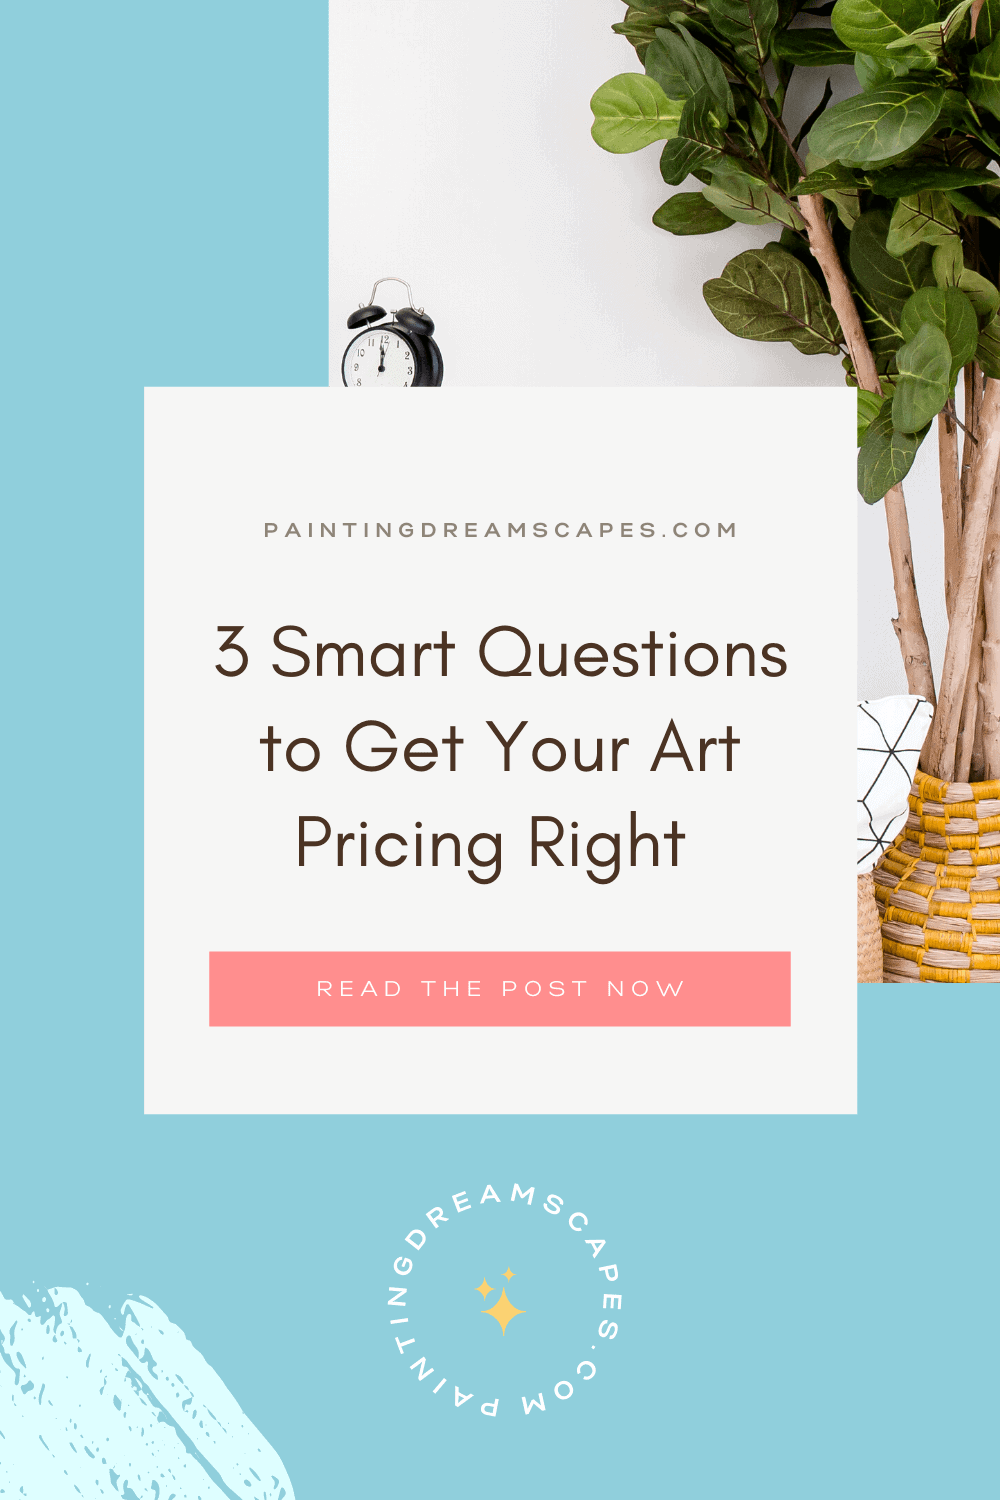 3 Smart questions to get your art pricing right and actually hit your revenue goals - Painting Dreamscapes